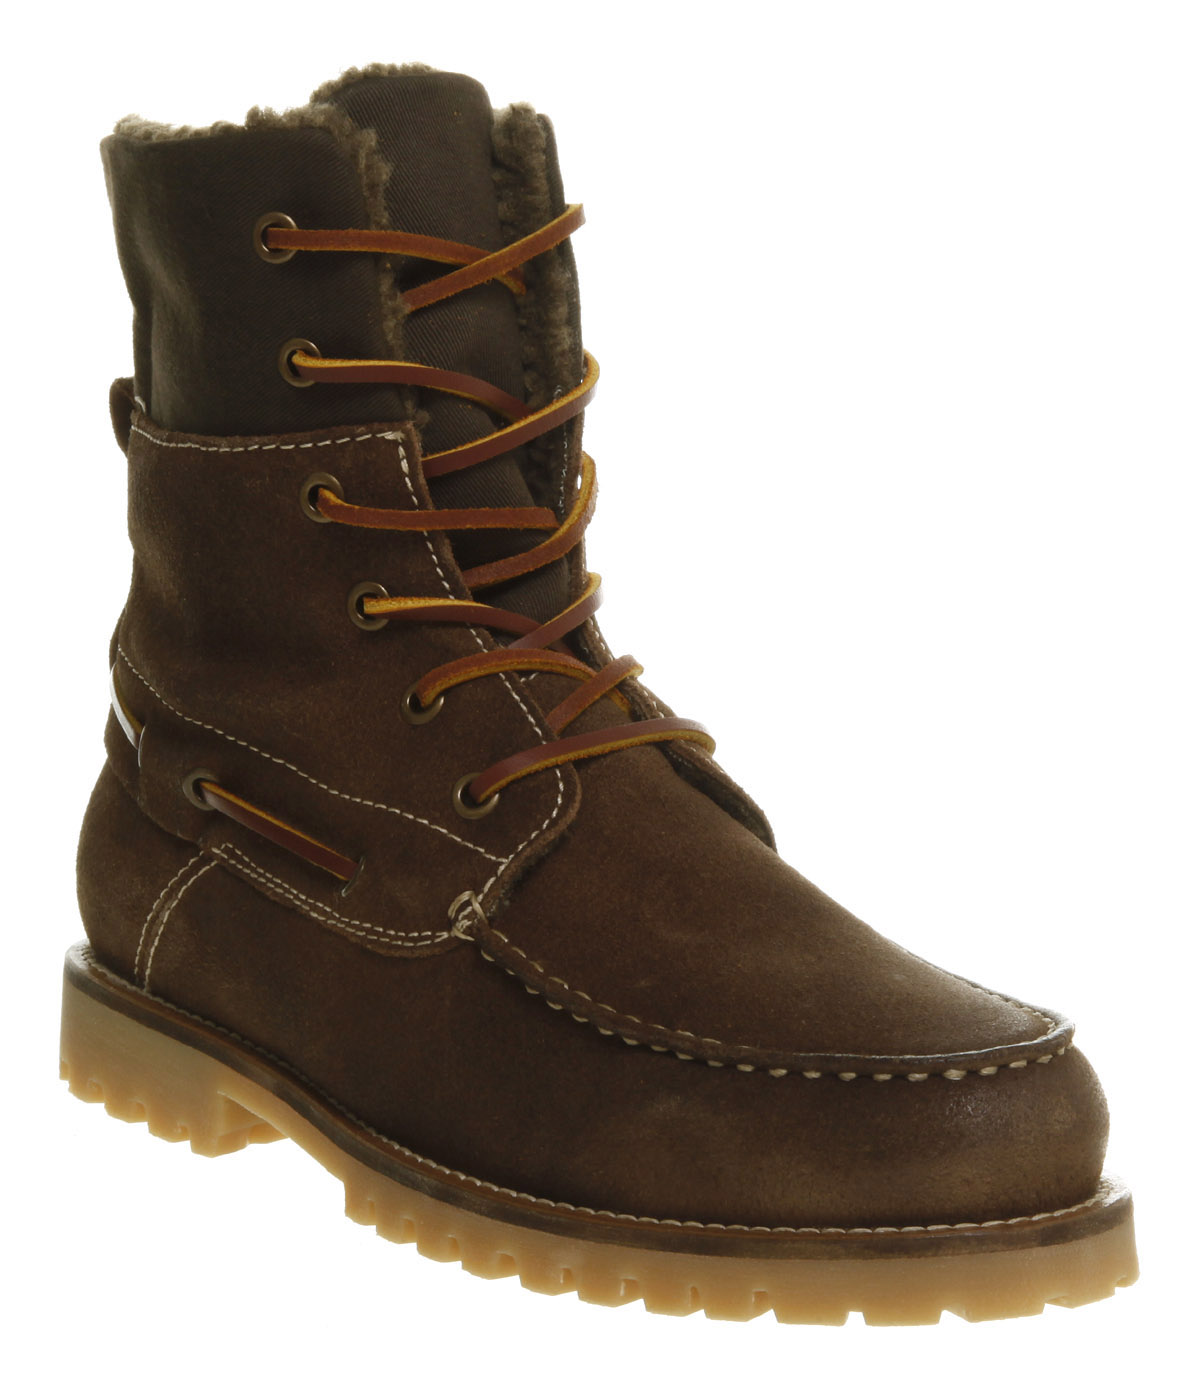 Mens-Ask-The-Missus-Kayak-Boat-Khaki-Brown-Suede-Boots